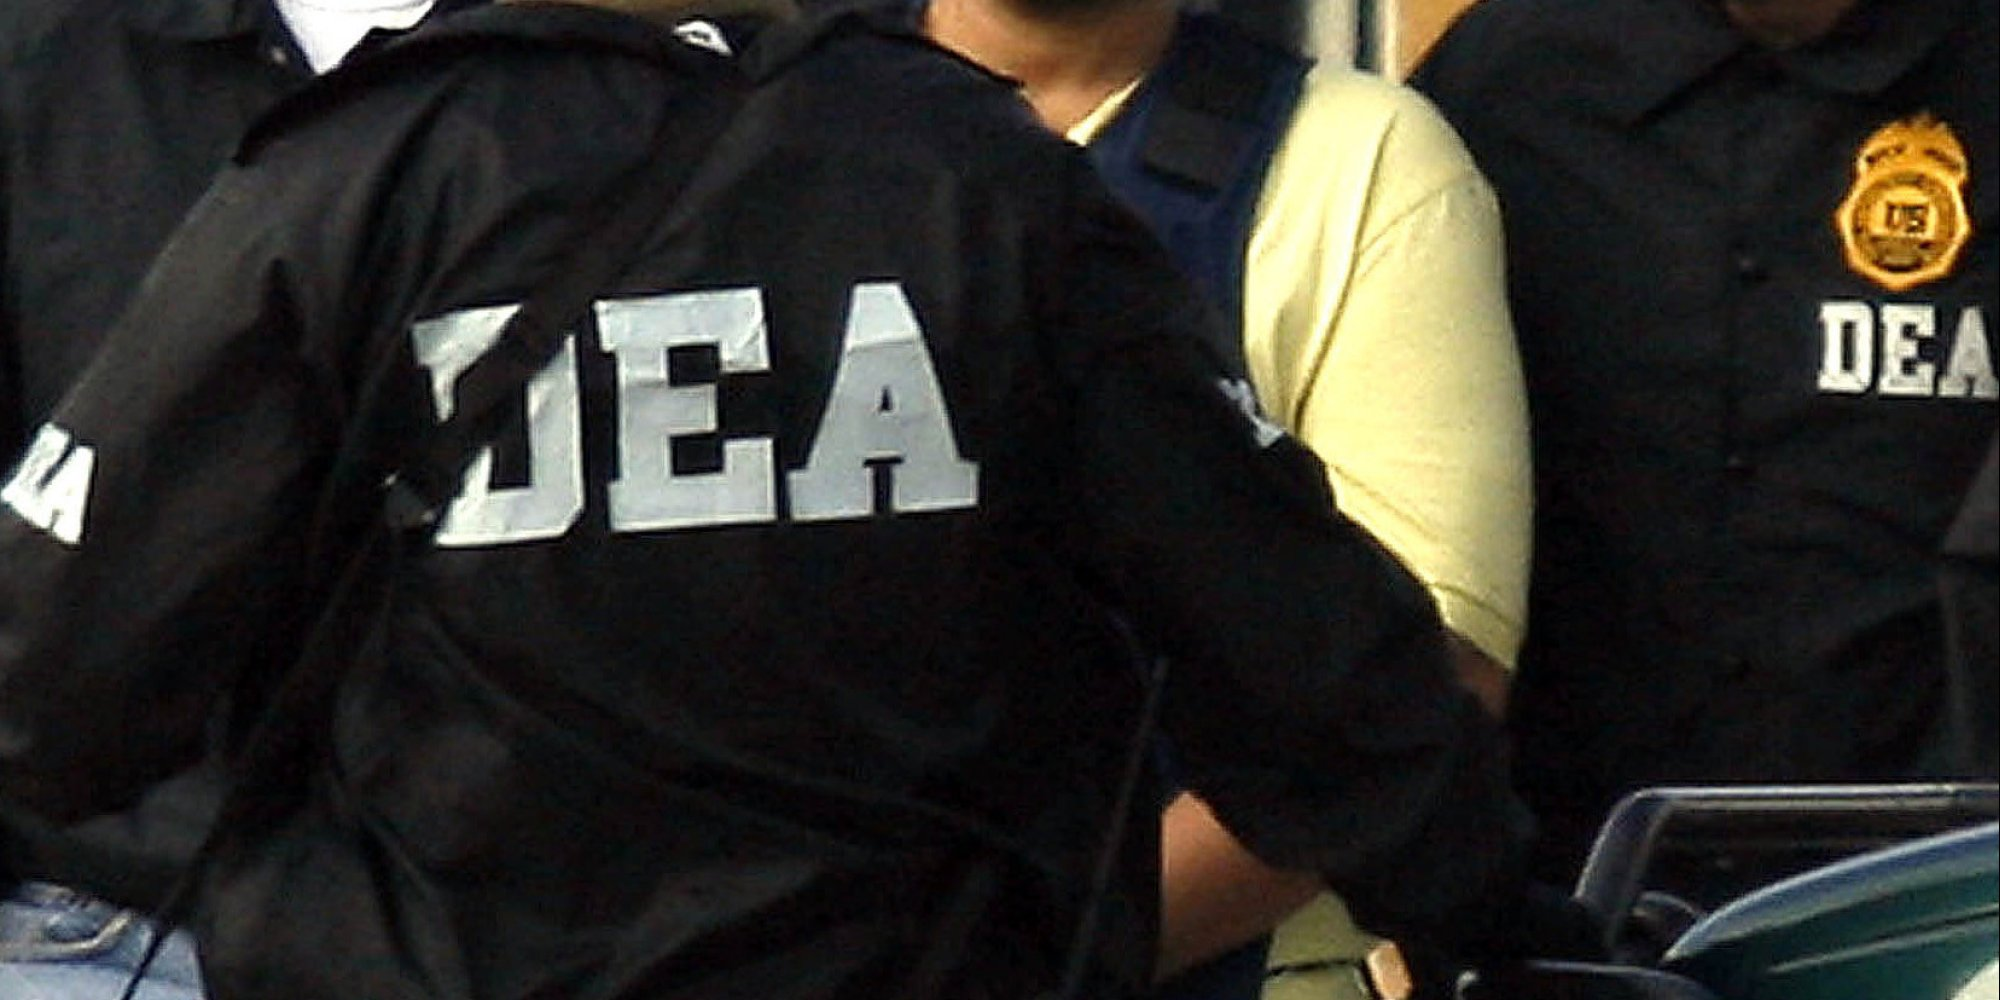 dea agent Dea interview details: 10 interview questions and 11 interview reviews posted anonymously by dea interview candidates.